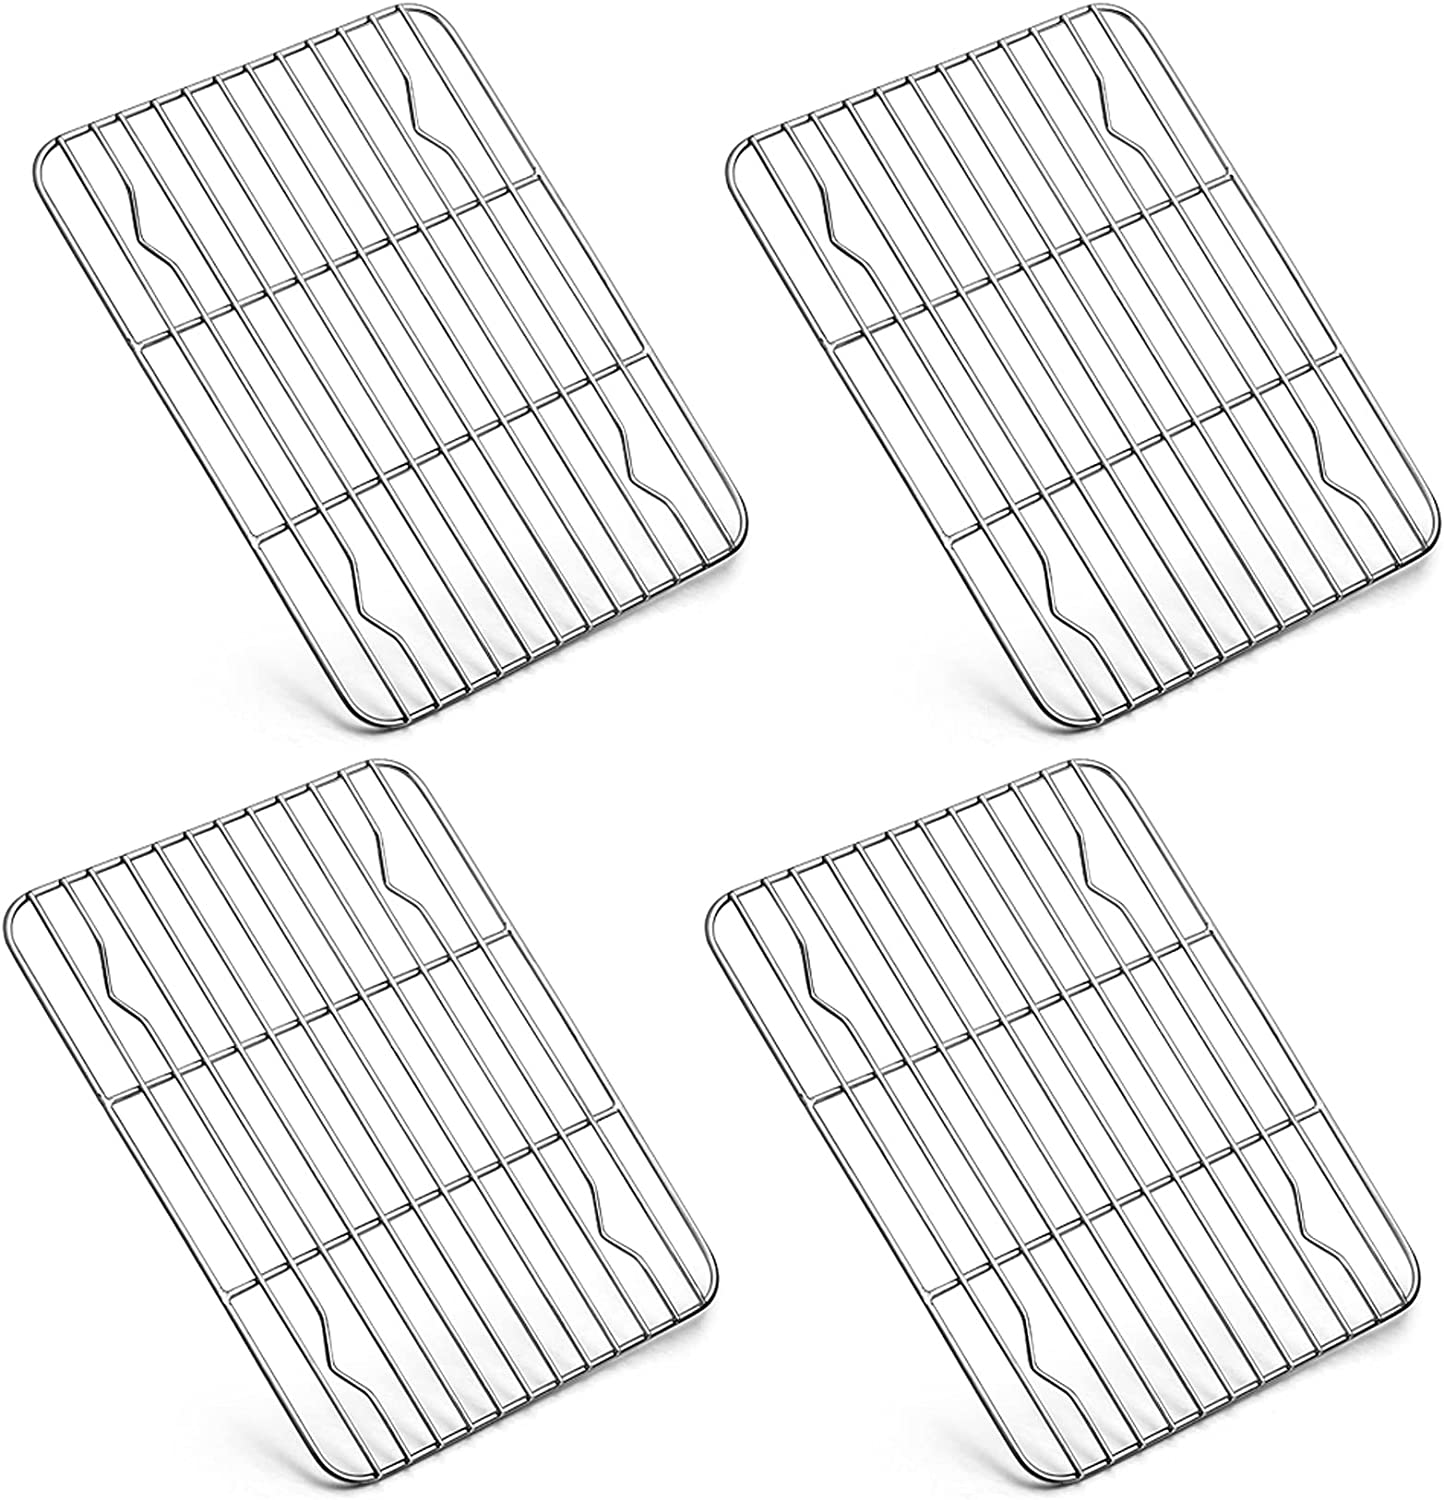 P&P CHEF Mini Baking Cooking Rack, 4 Piece Stainless Steel Wire Rack for Cooling Oven Kitchen Use,Fits Small Toaster Oven, Rectangle 8.6'' x 6.2'' x0.6'', Siliver, Dishwashe Safe